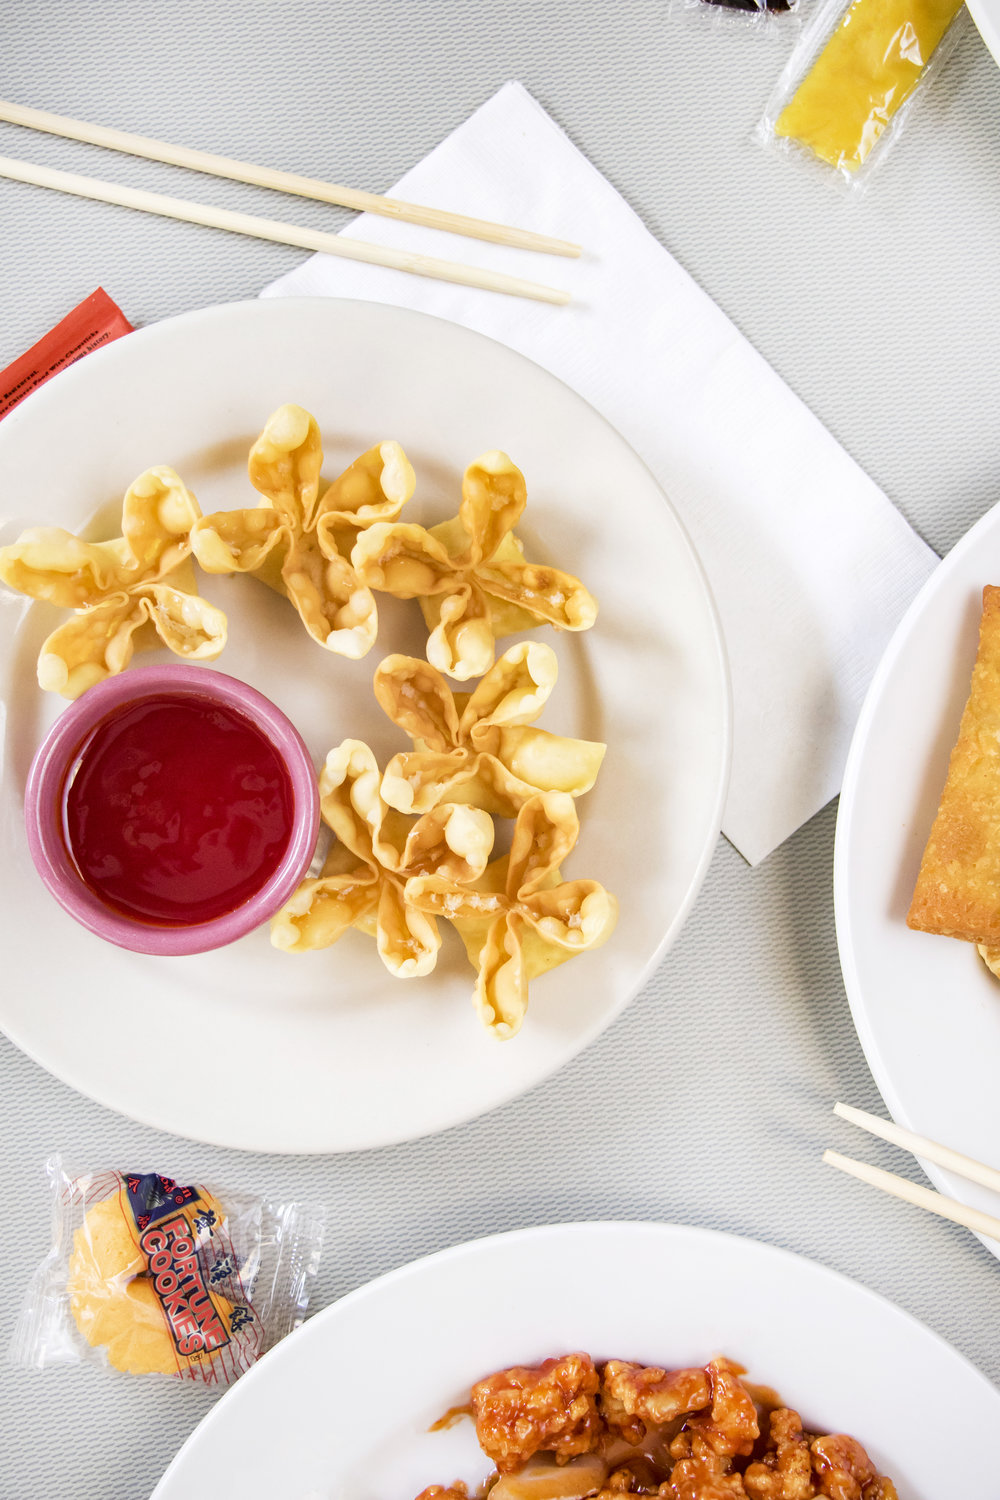 Cincinnati Food Photographer |Shans Jade Cafe |Crab Rangoon | Allison McAdams.jpg